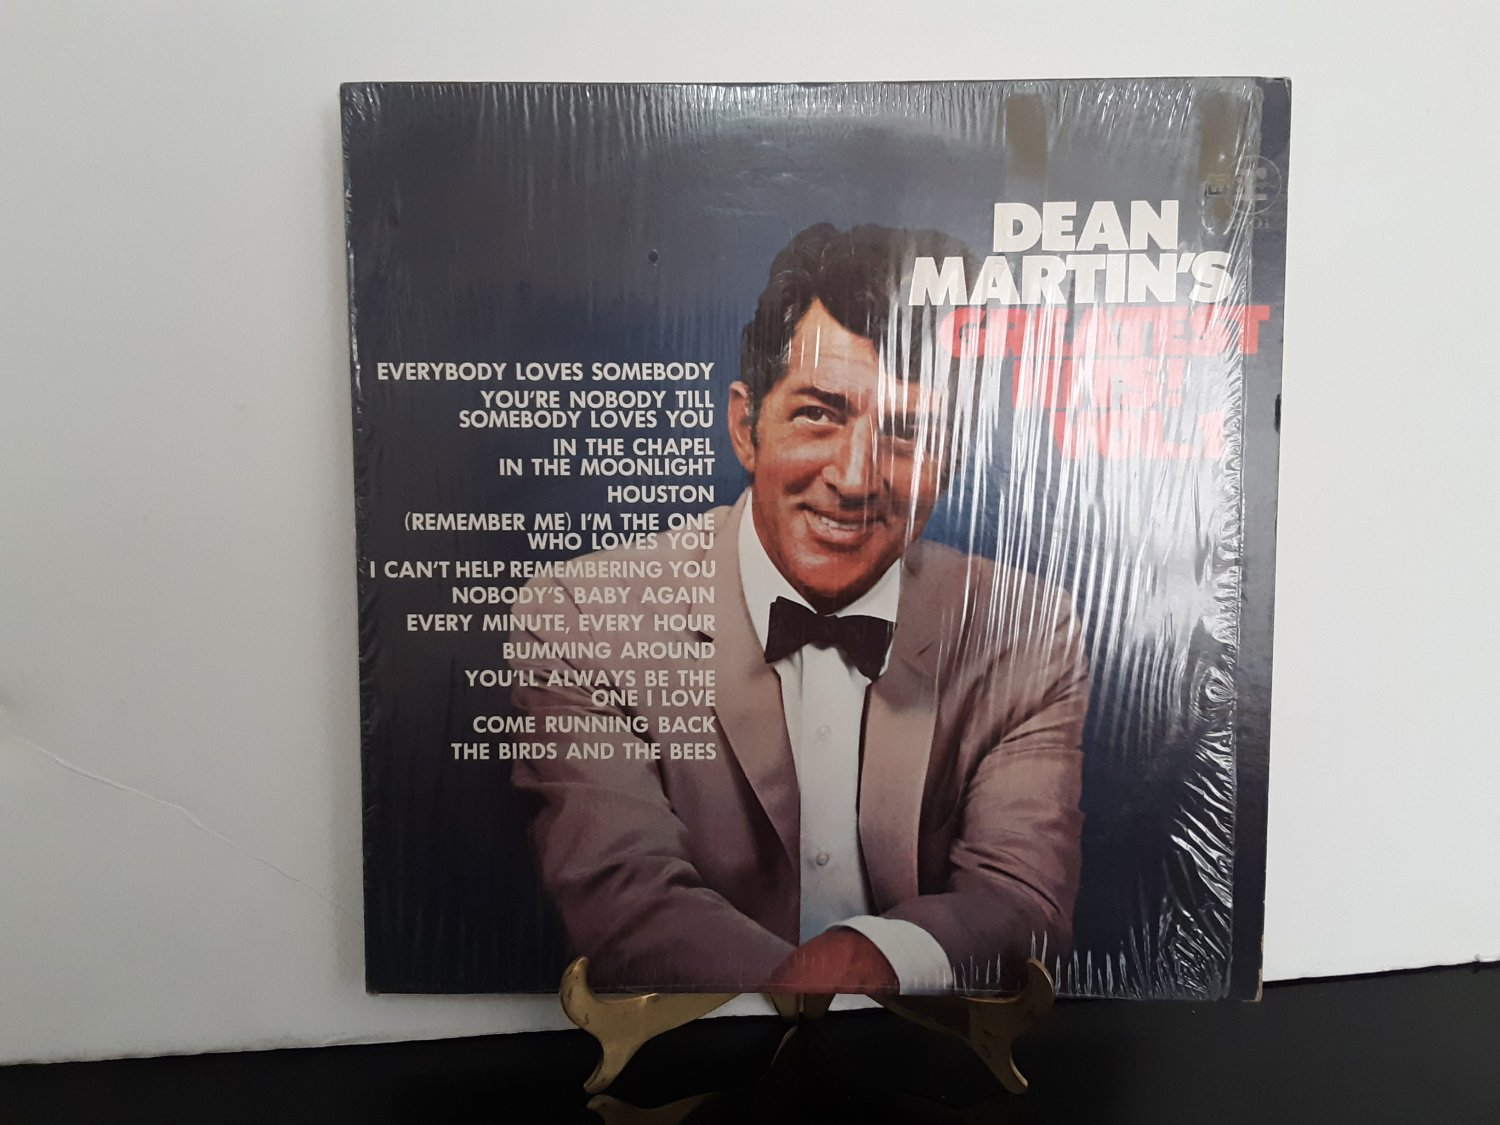 Dean Martin - Greatest Hits Volume 1 - Circa 1968